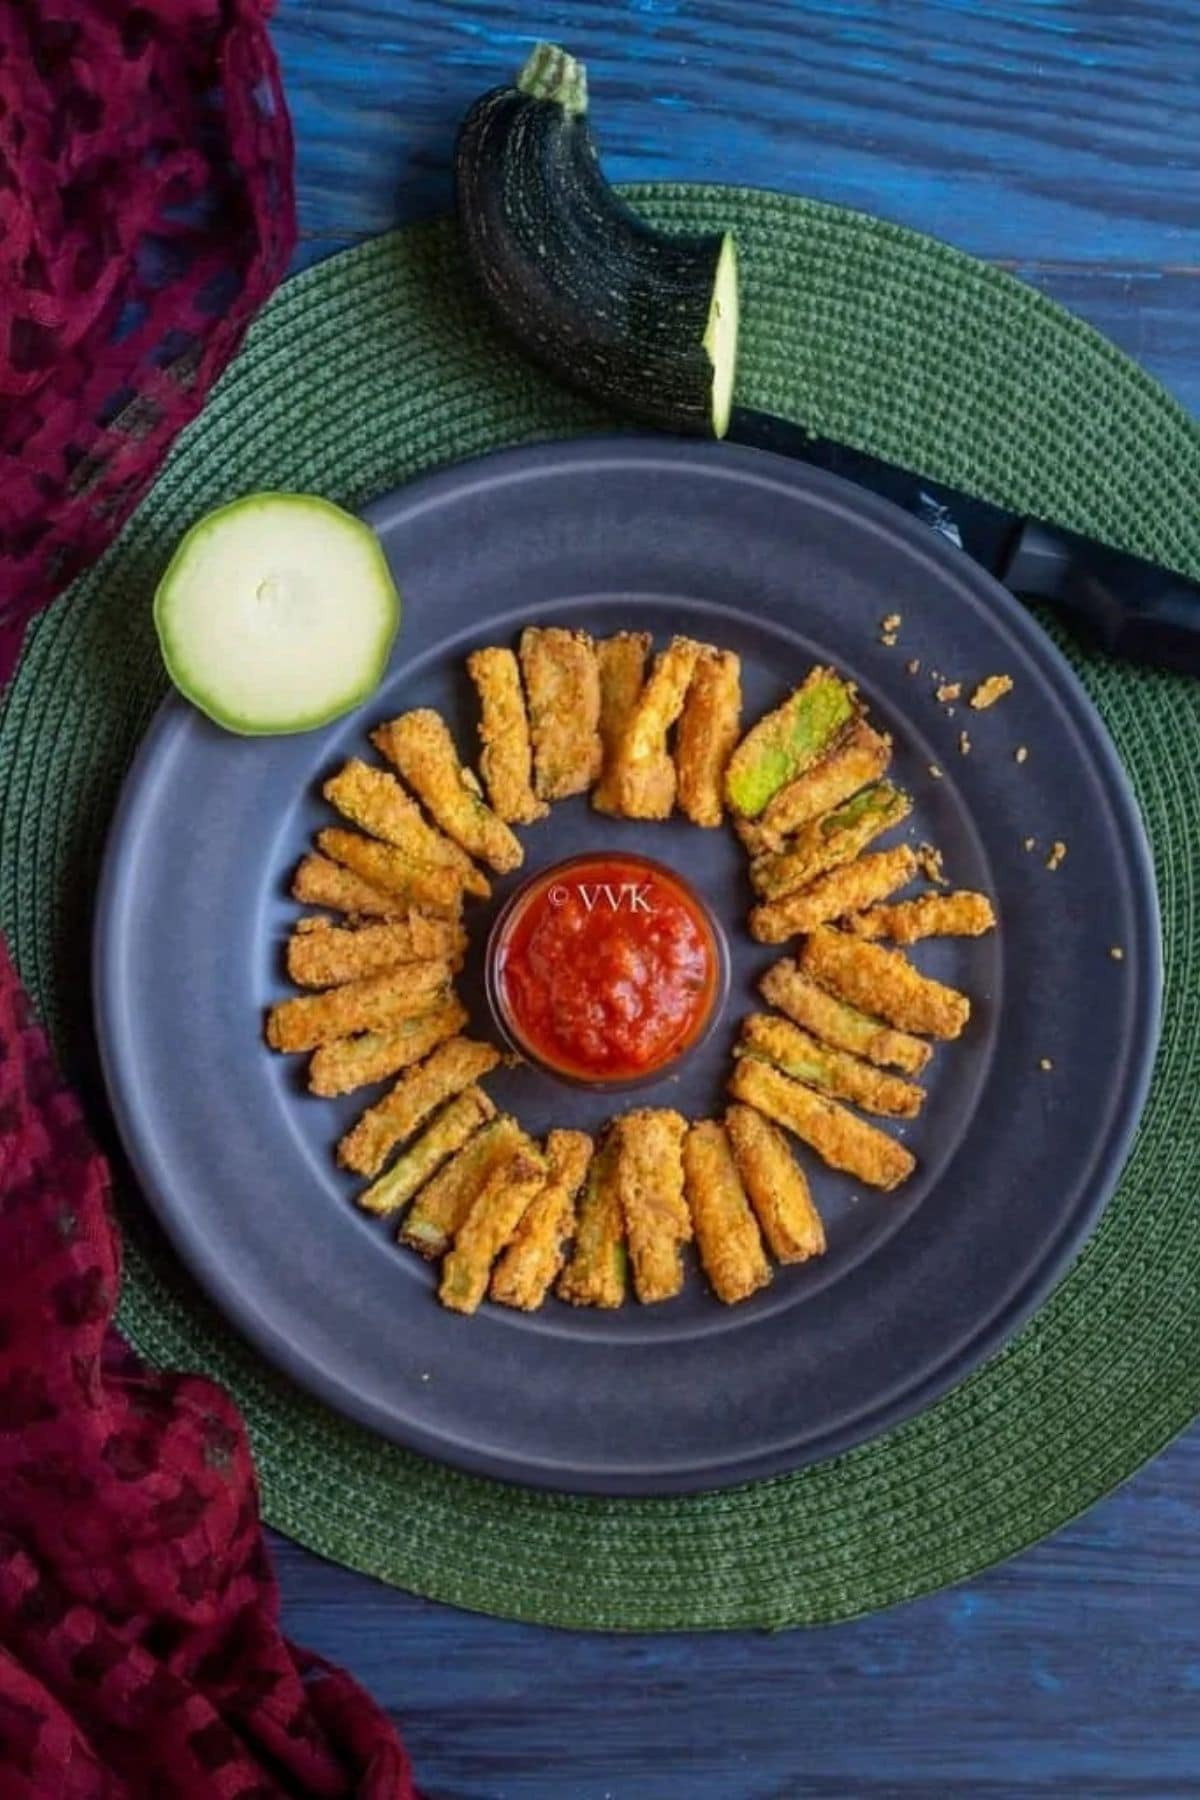 Zucchini fries in circle around bowl of ketchup on blue plate